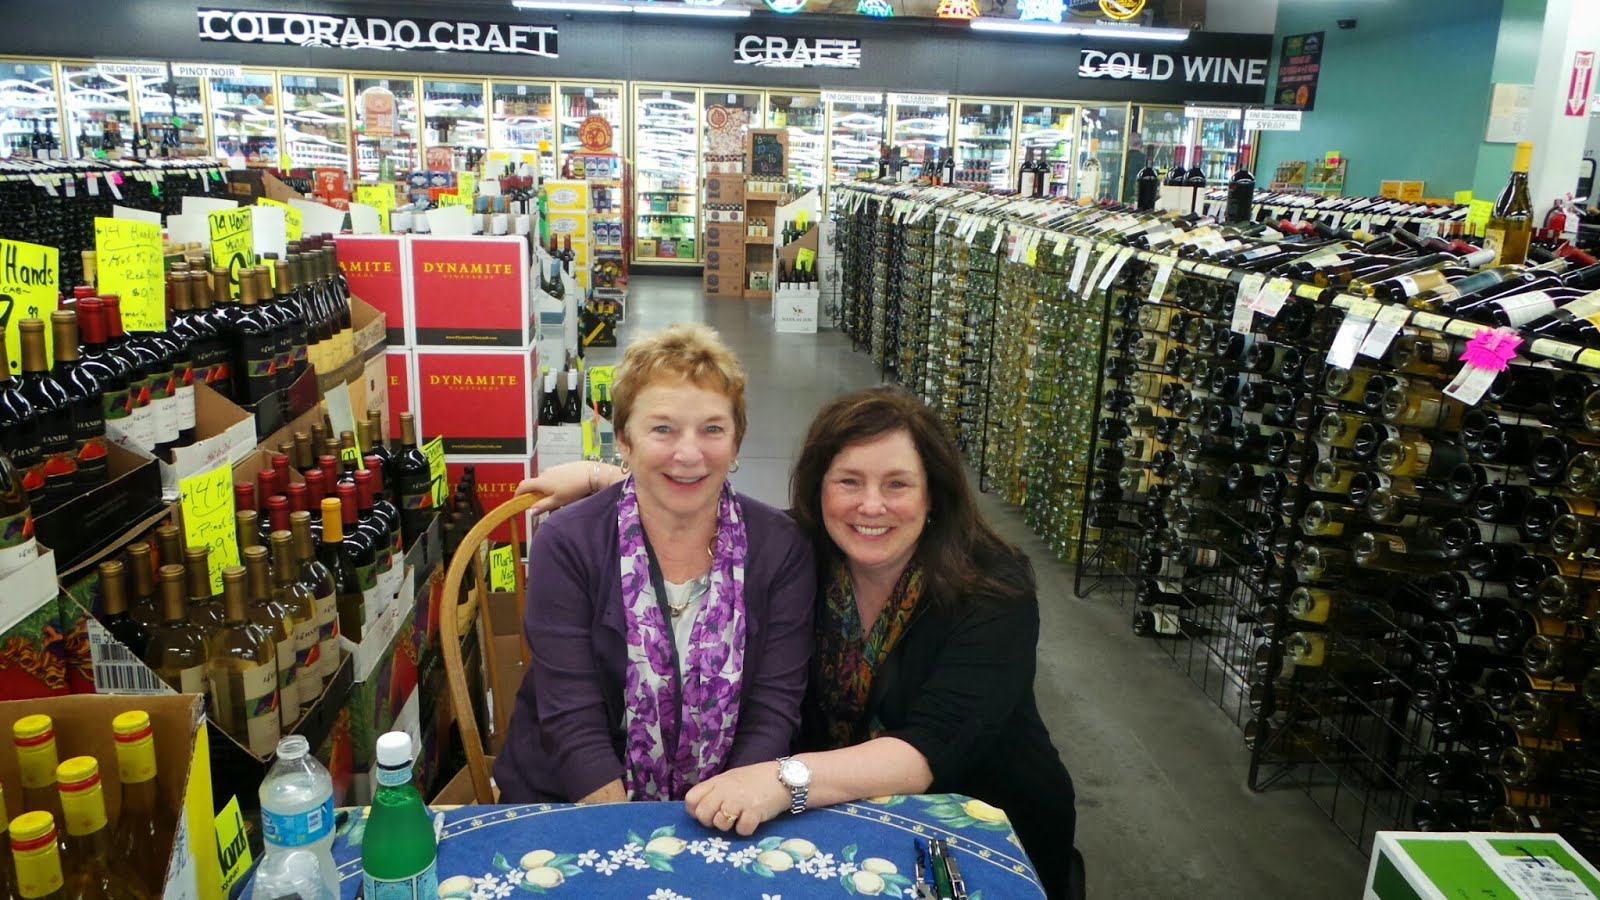 Frances Mayes & Kathleen DeCosmo ( Katie Shea Design)  Shot with a Samsung Galaxy Camera #VZWBuzz by Katie Shea Design